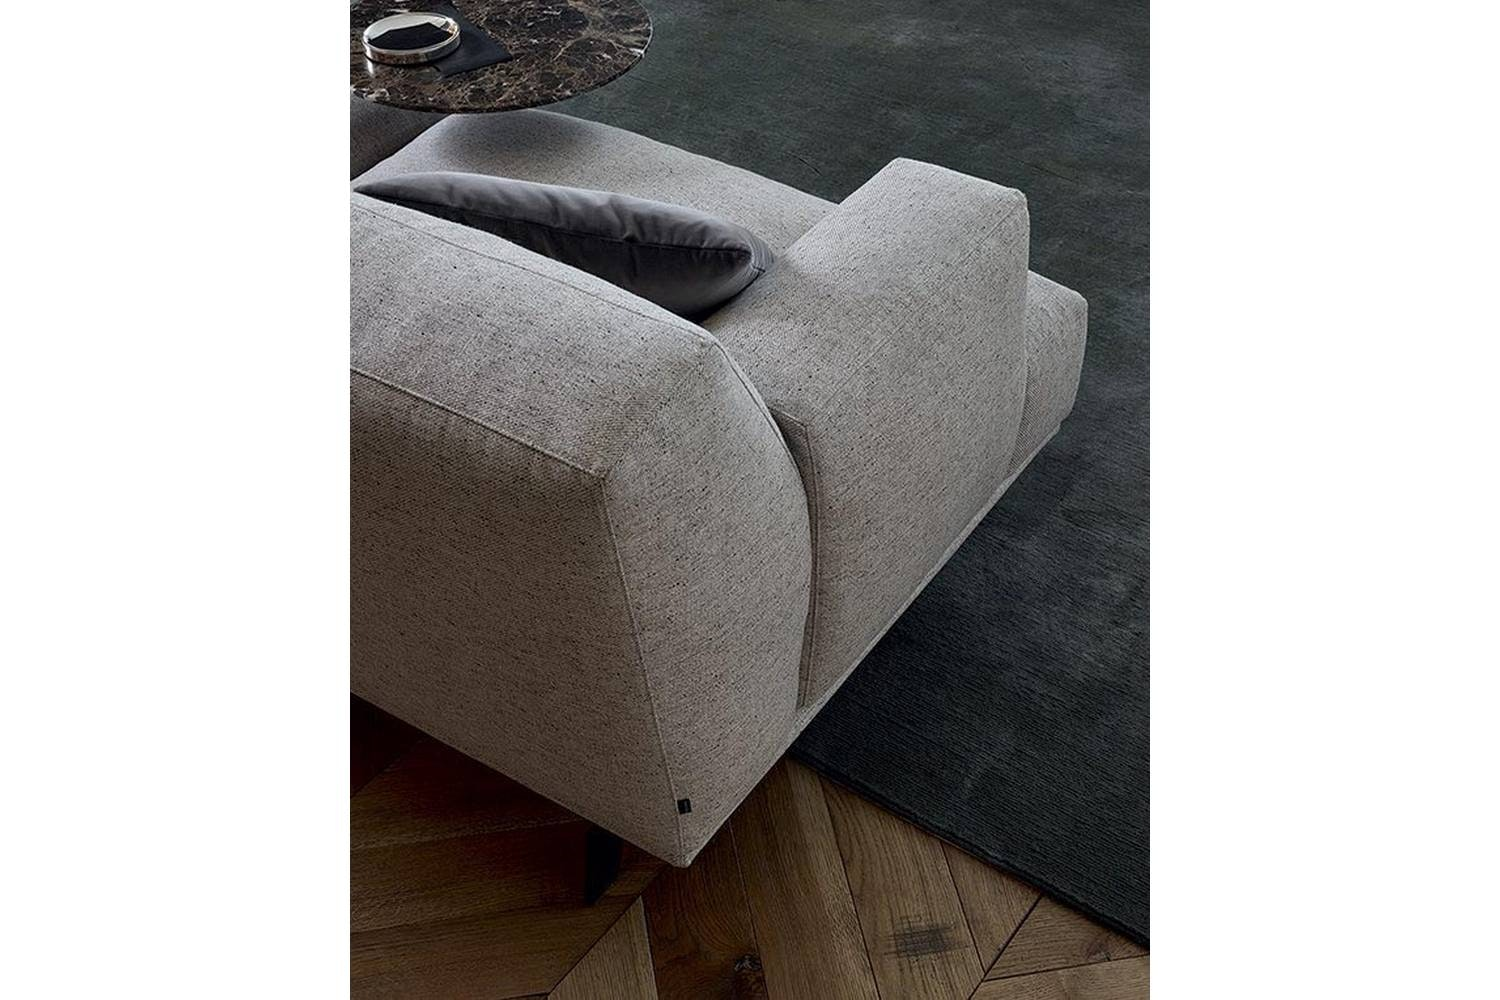 Tribeca Sofa by J. M. Massaud for Poliform